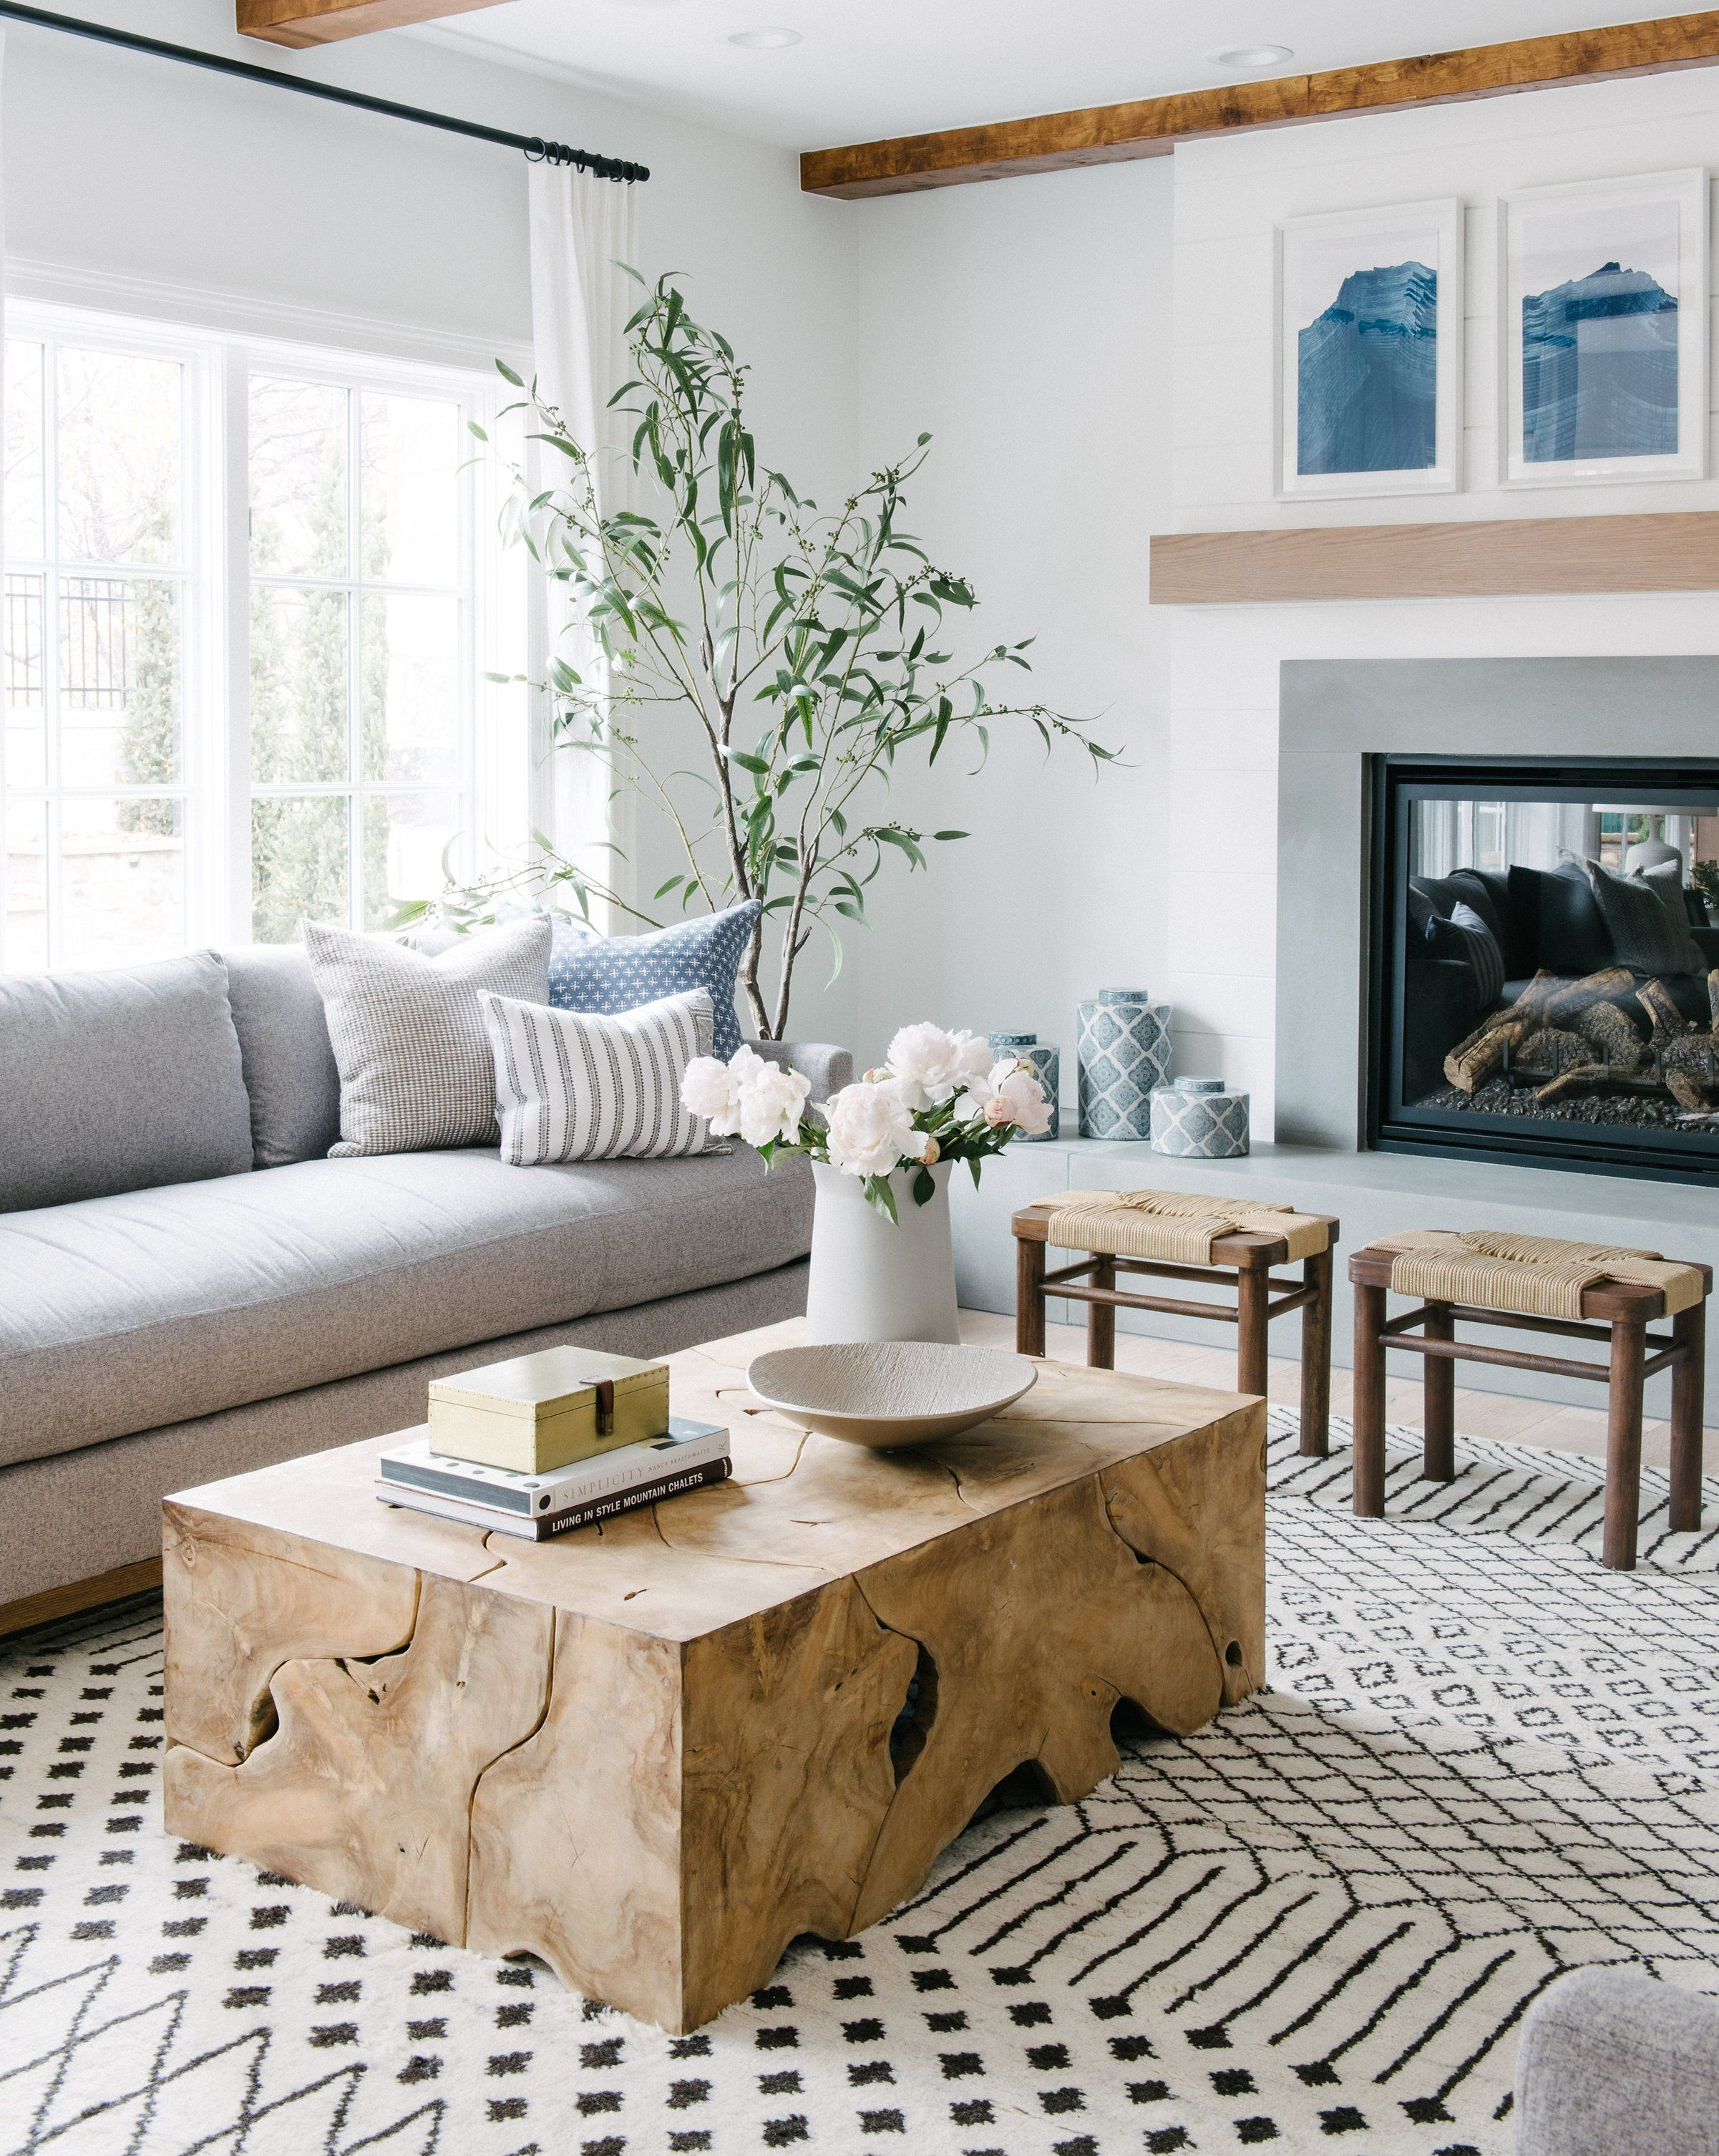 Tory coffee table living room designs rugs in interior design also sonoma livingroomdesignideas inspo rh pinterest